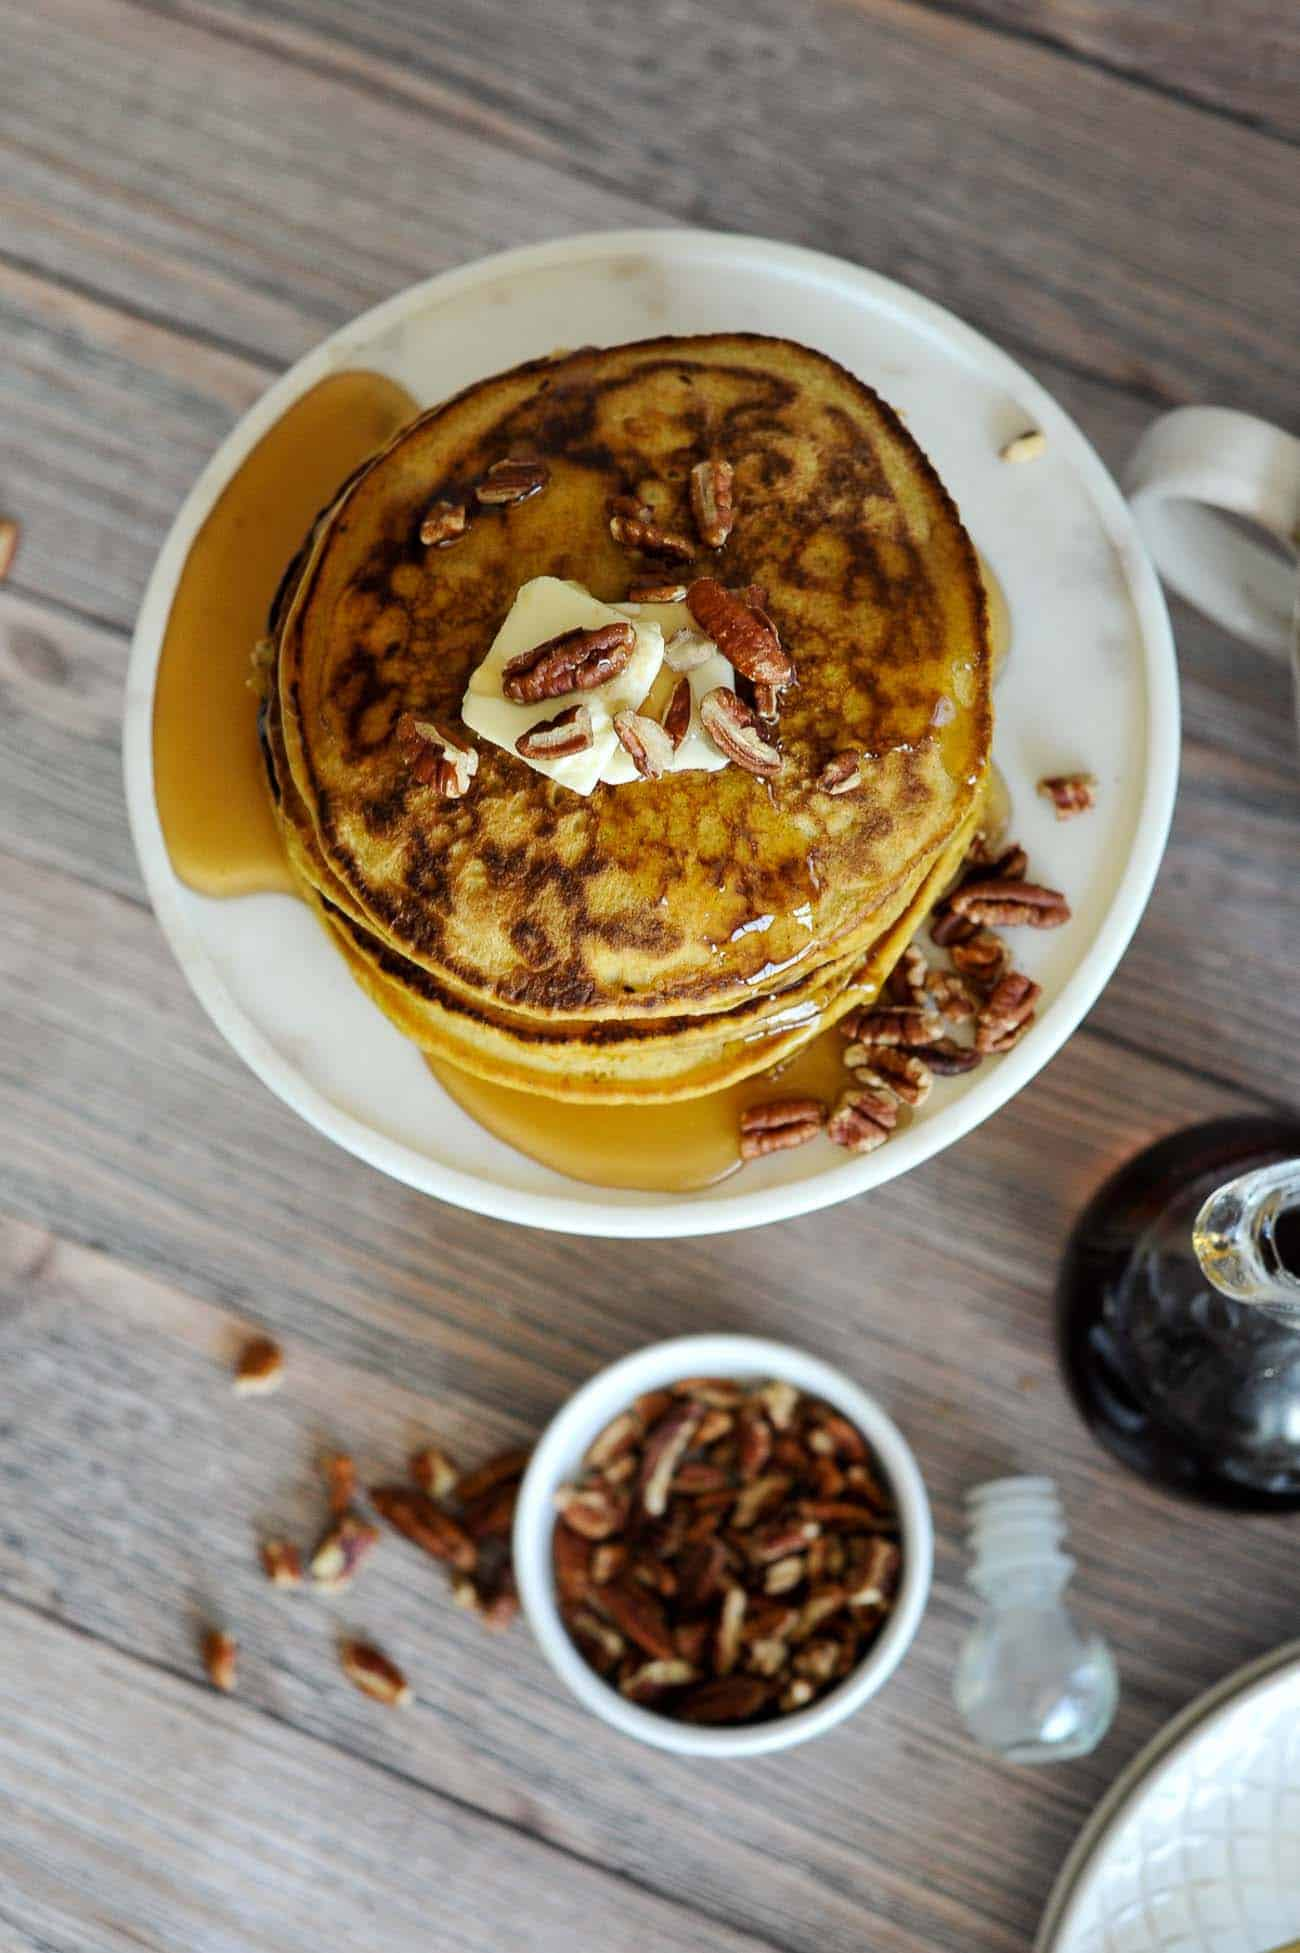 Pumpkin pancake recipe, pumpkin recipes to try for fall - My Style Vita @mystylevita